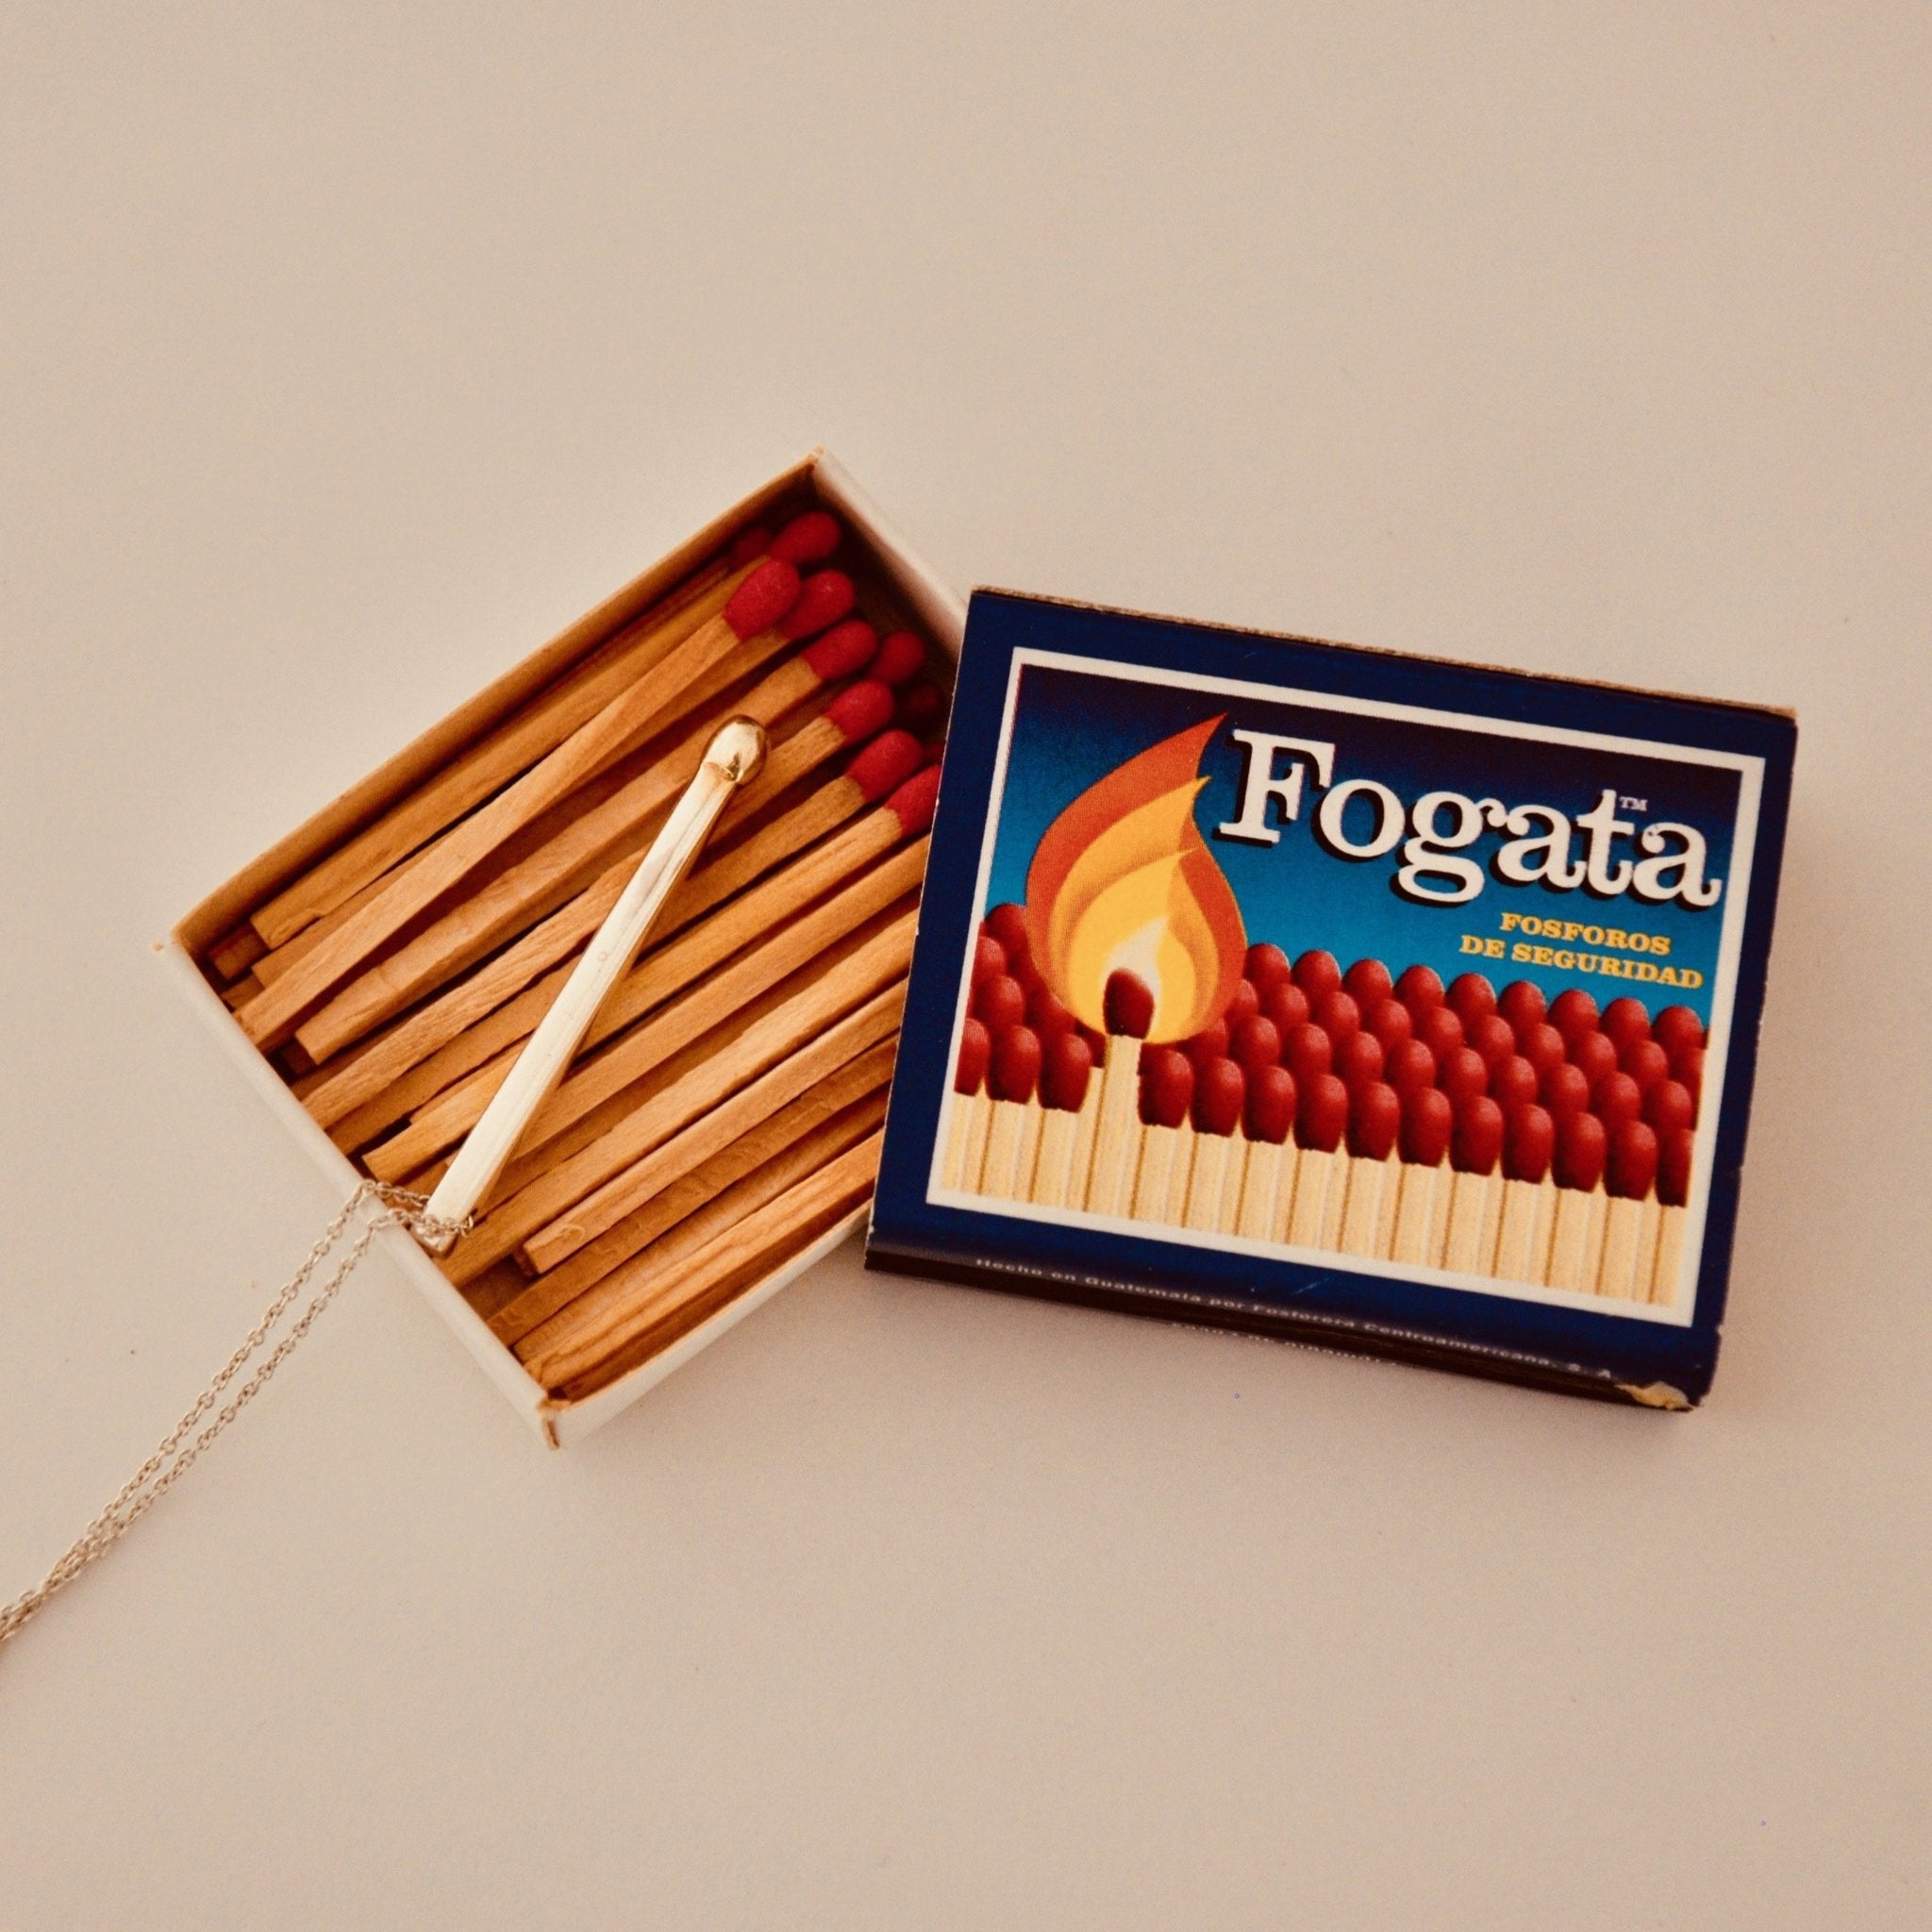 silver and gold necklace in the shape of a matchstick inside a matchbox